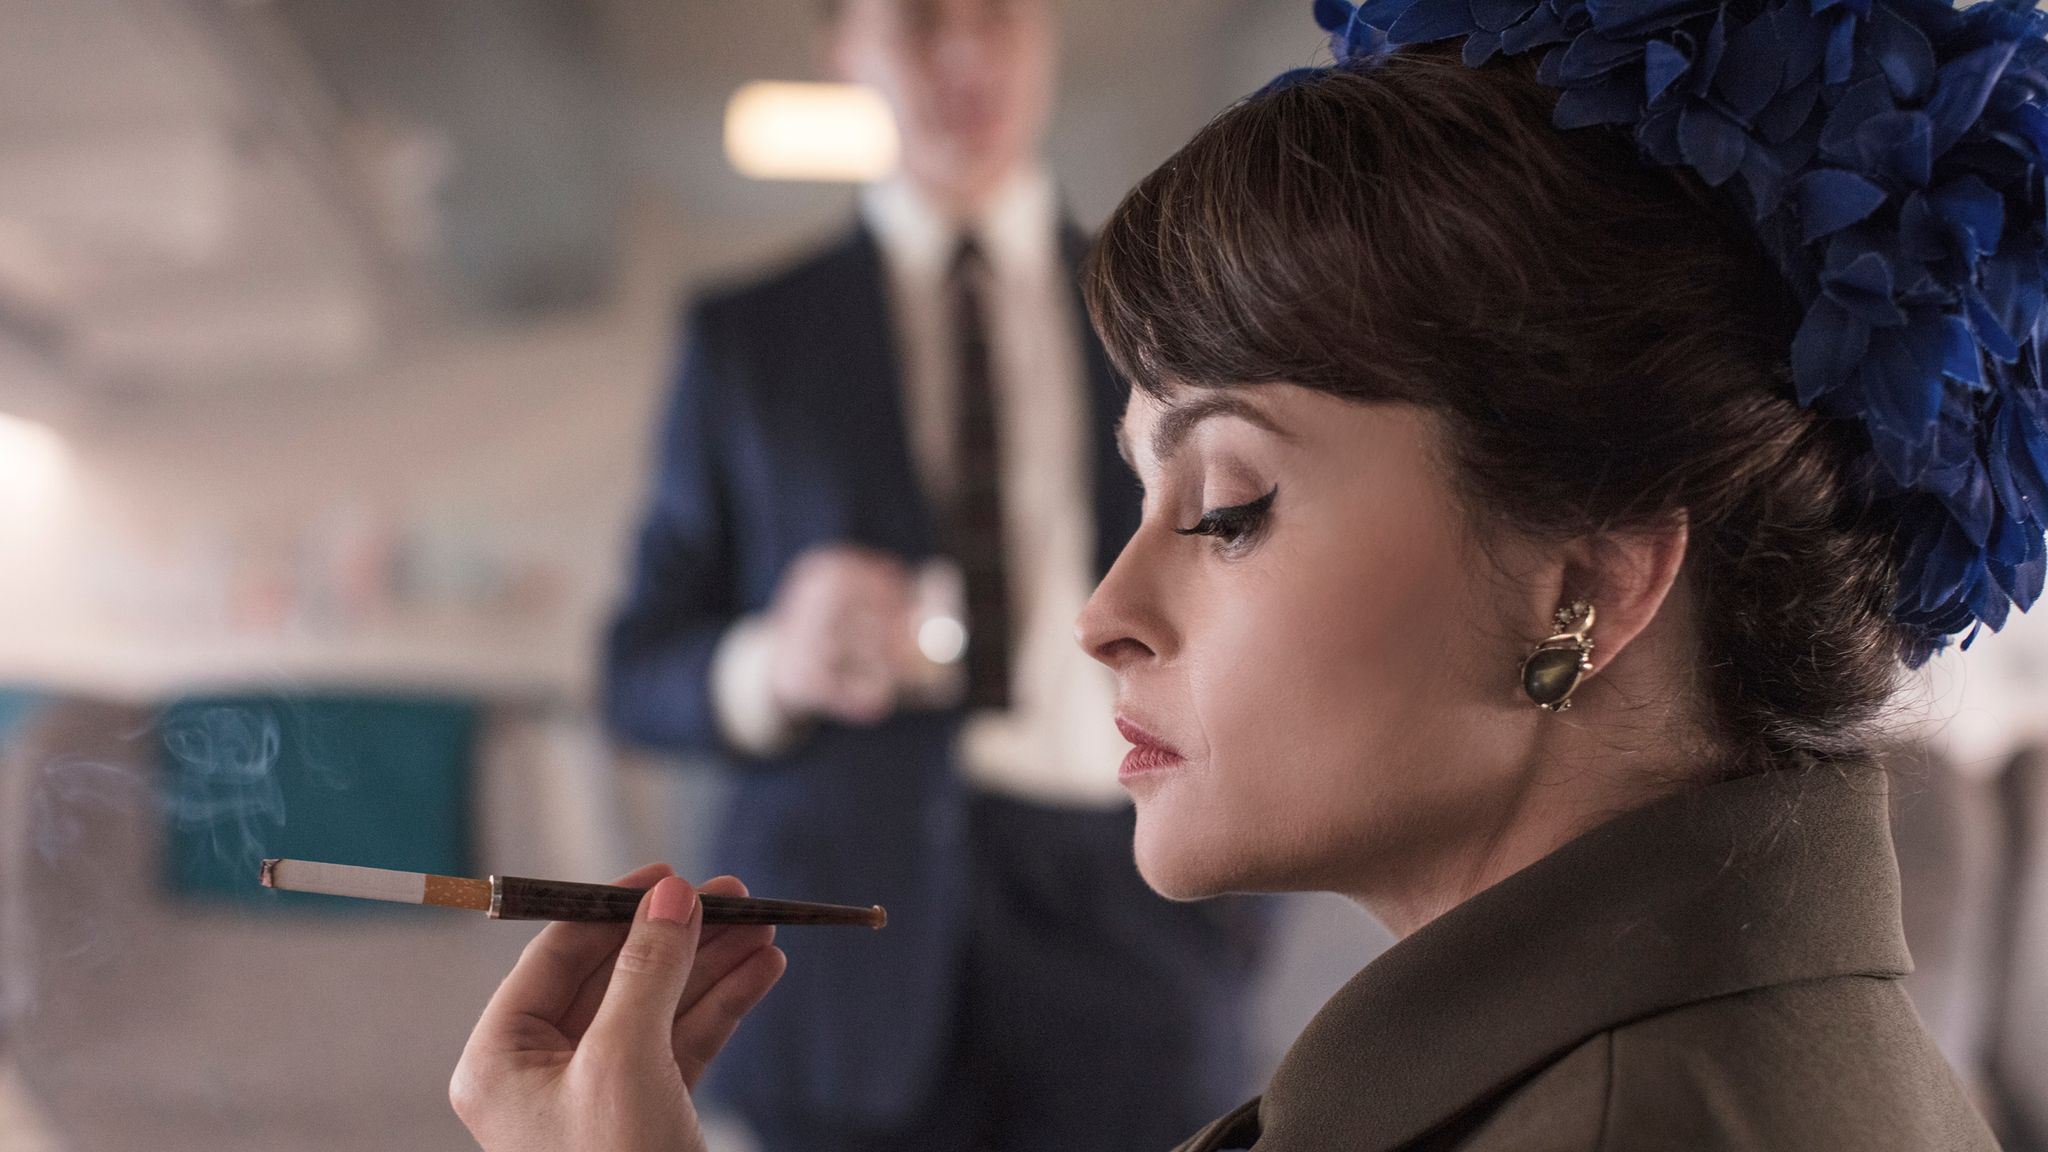 Helena Bonham Carter will take over the role of Princess Margaret in the third season of The Crown